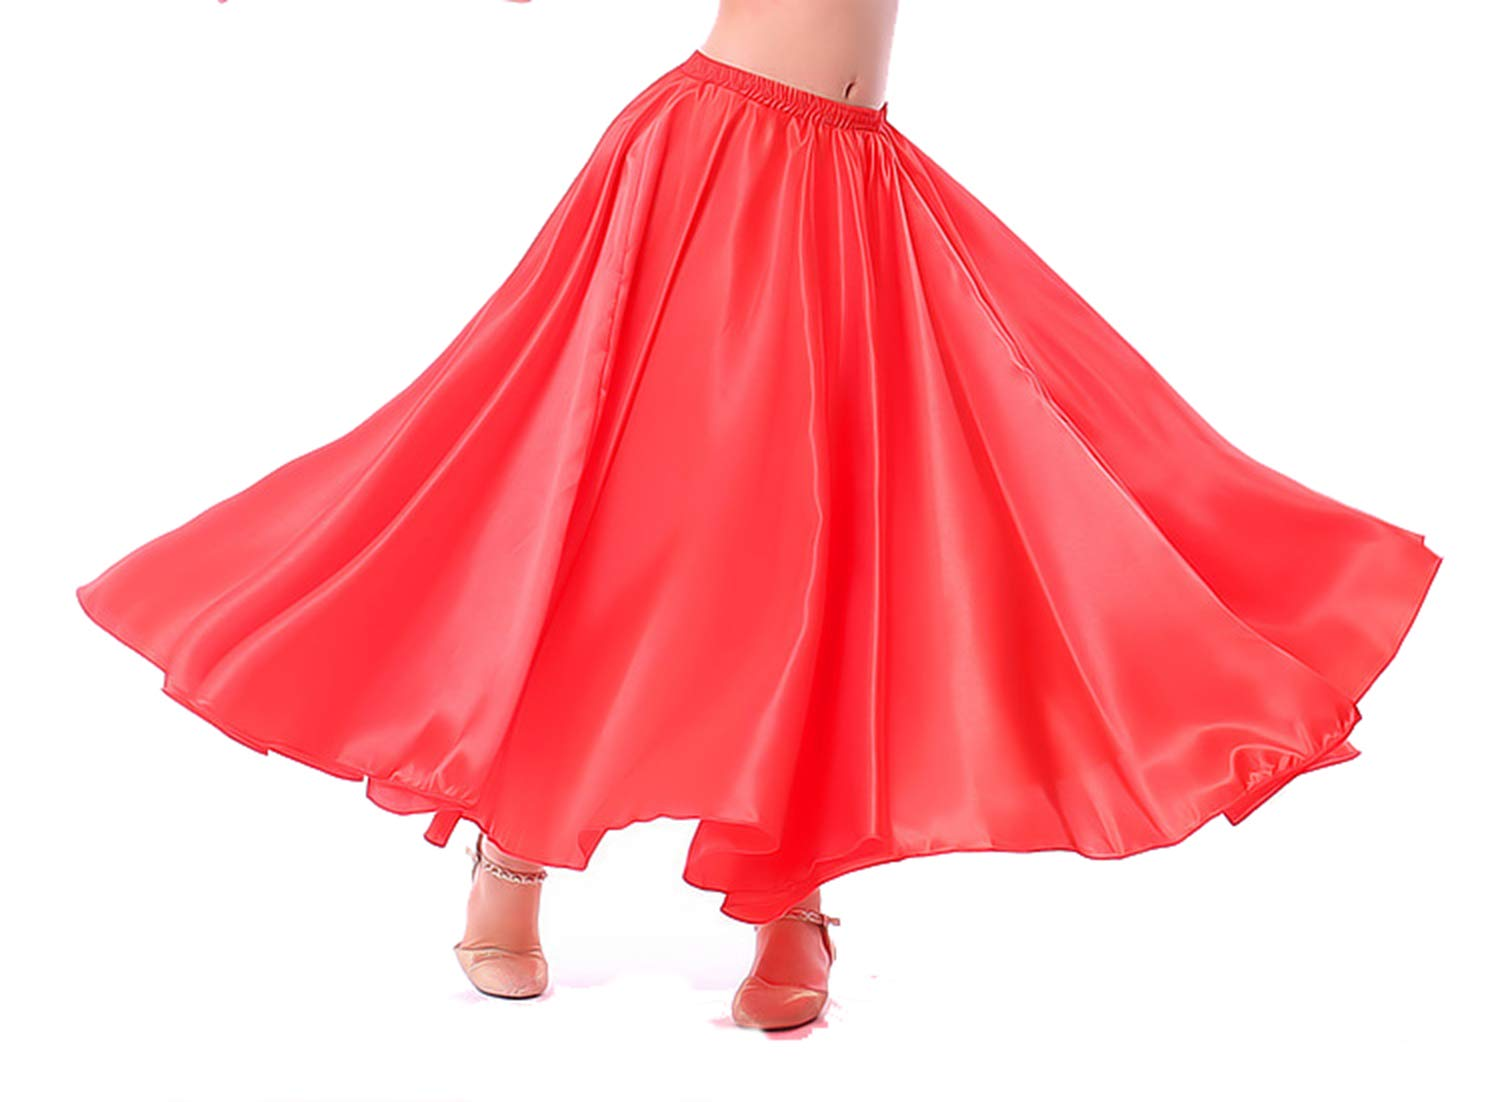 Lauthen.S Kids Gilrs Skirt for Belly Dance/Performance/Halloween Party, Satin Full Circle Tribal Skirt(Red,S) by Lauthen.S